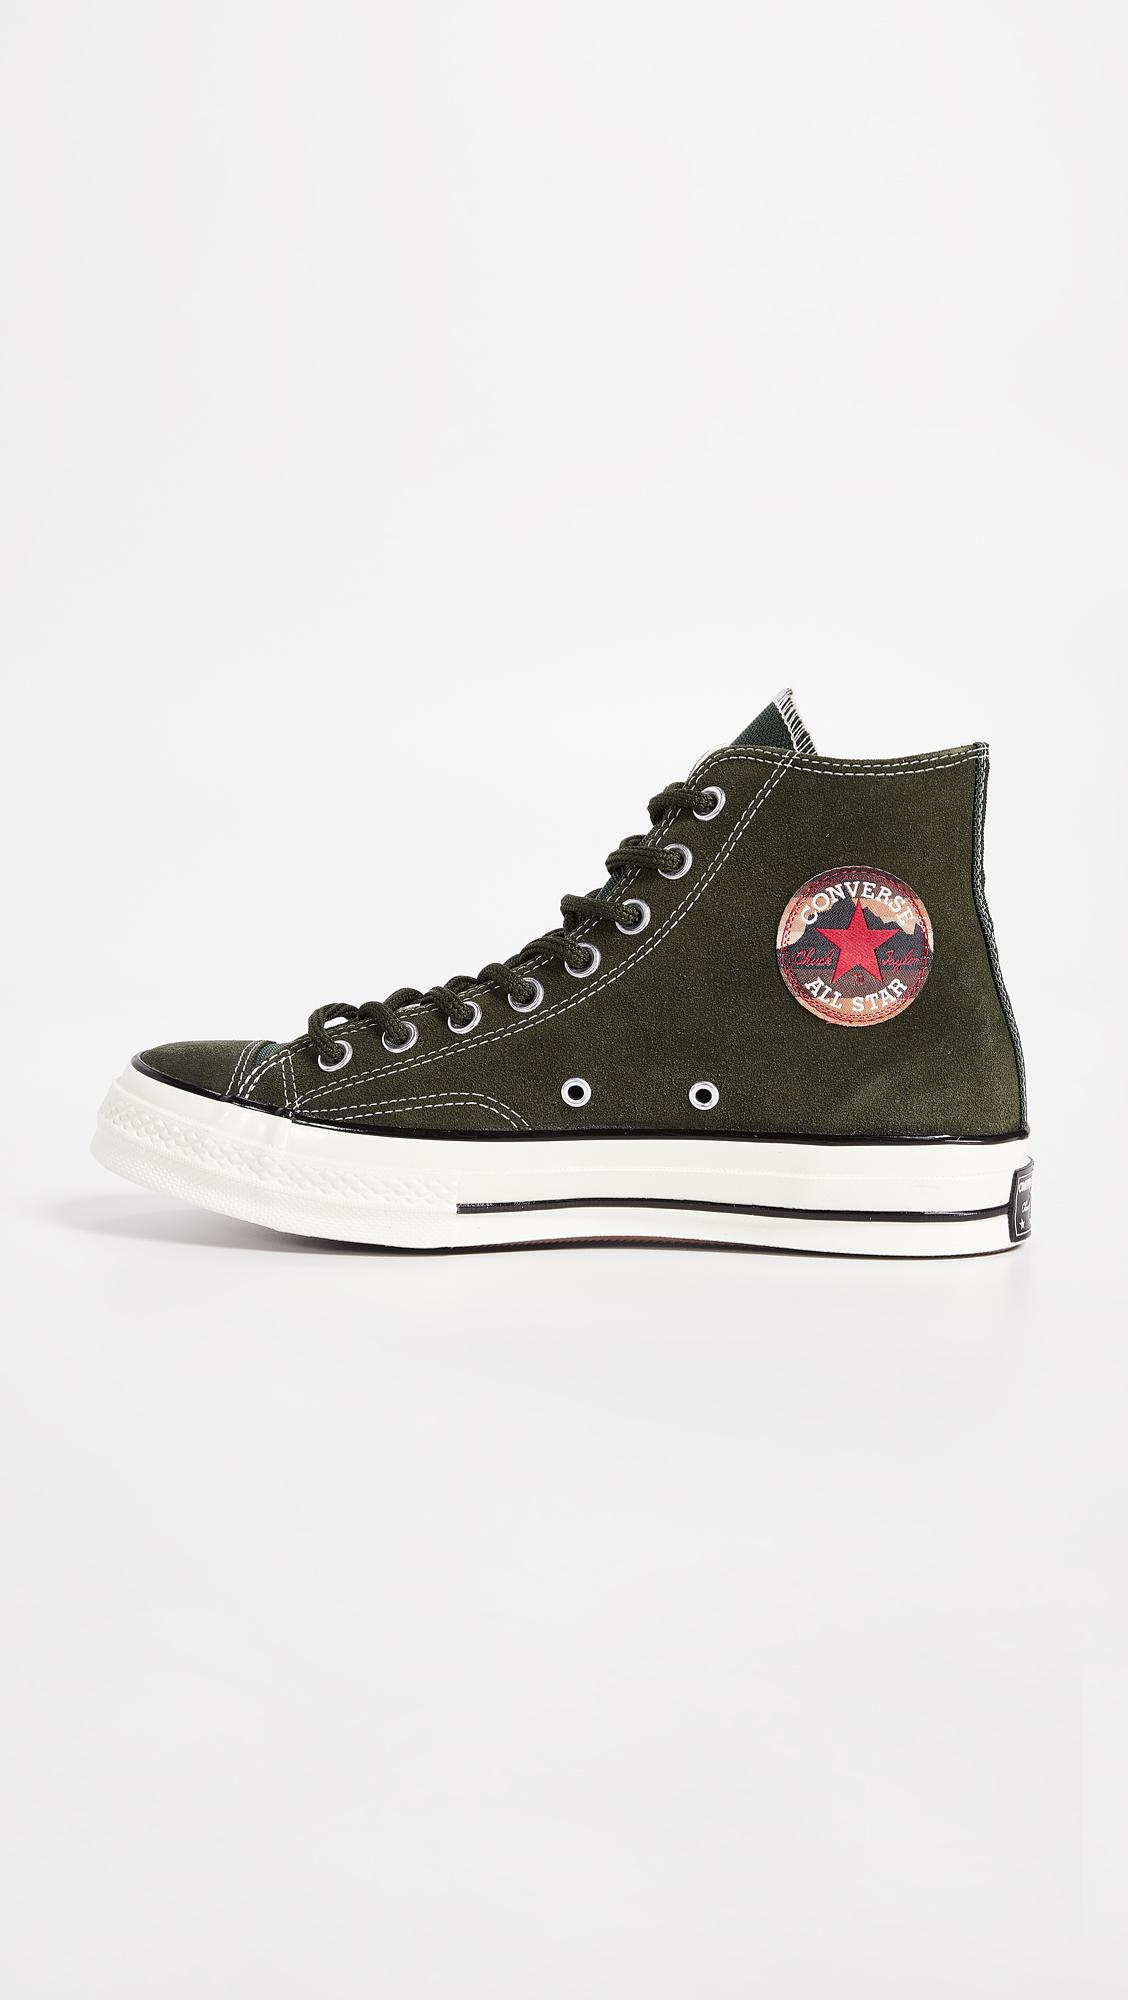 Converse Chuck Taylor 70 Base Camp Suede High Top Sneakers in Green ... 261bae3dd